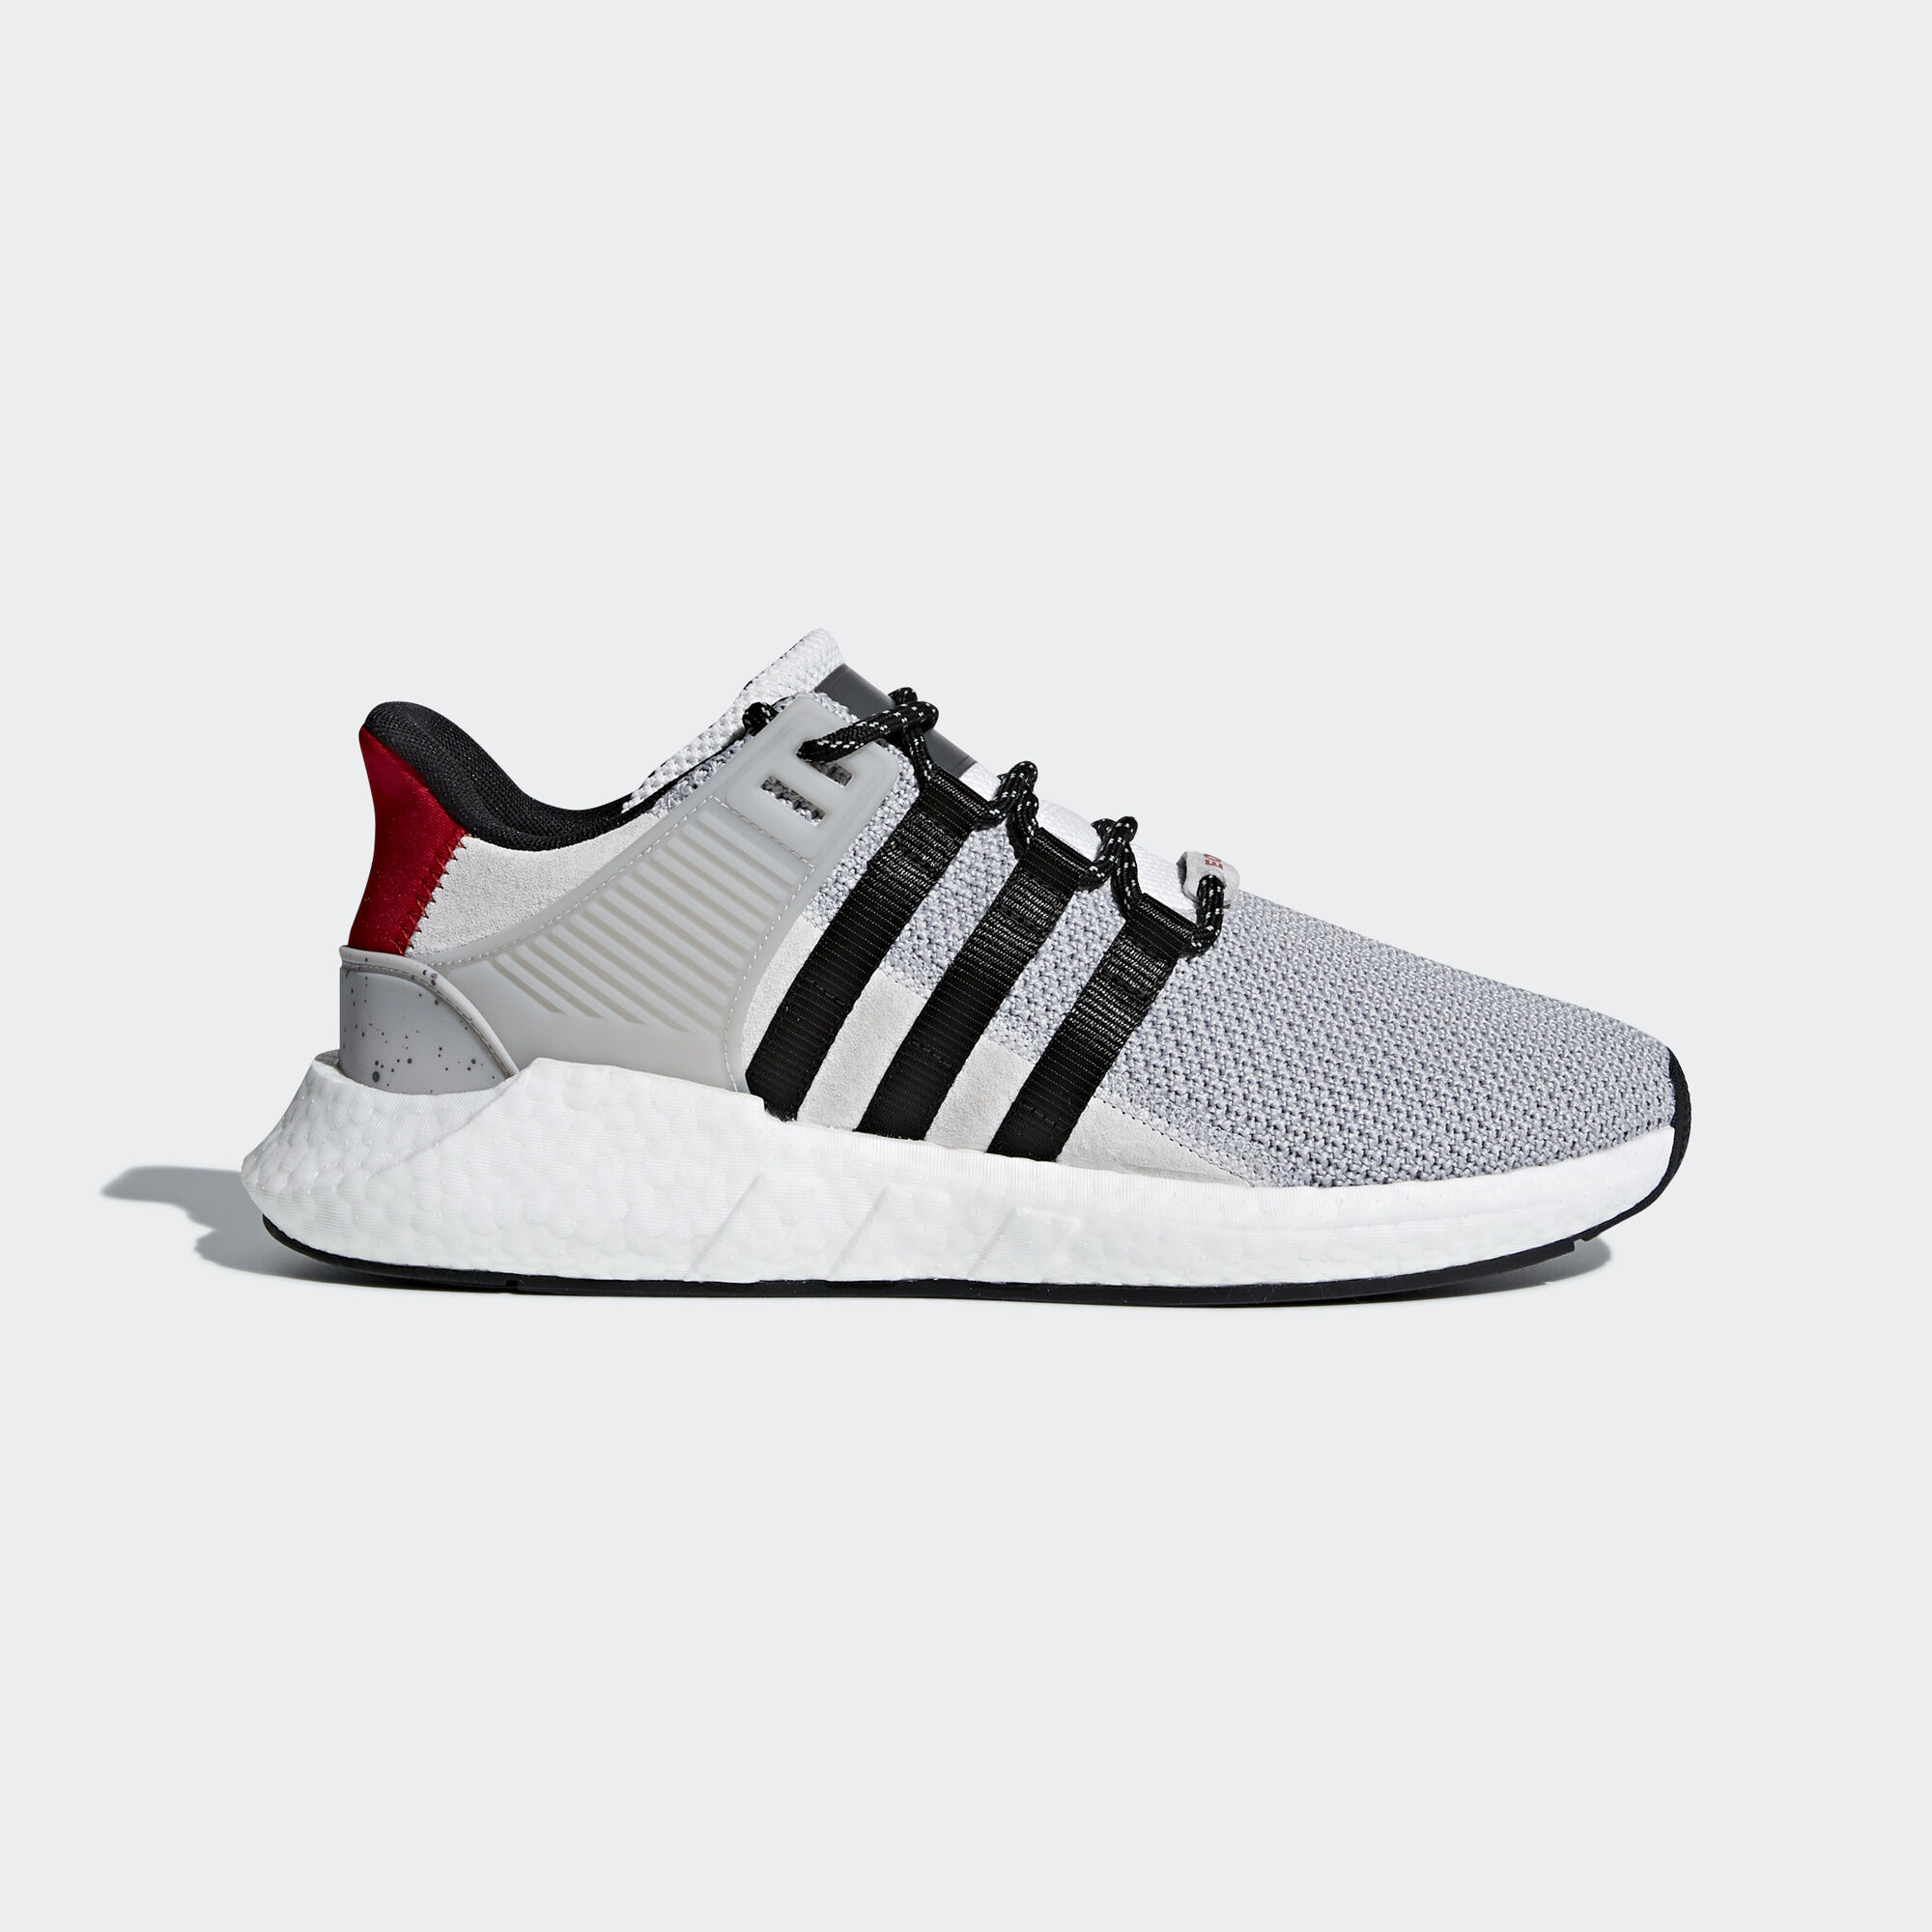 adidas EQT Support 93 17 Chaussures Gris adidas Asia Middle East